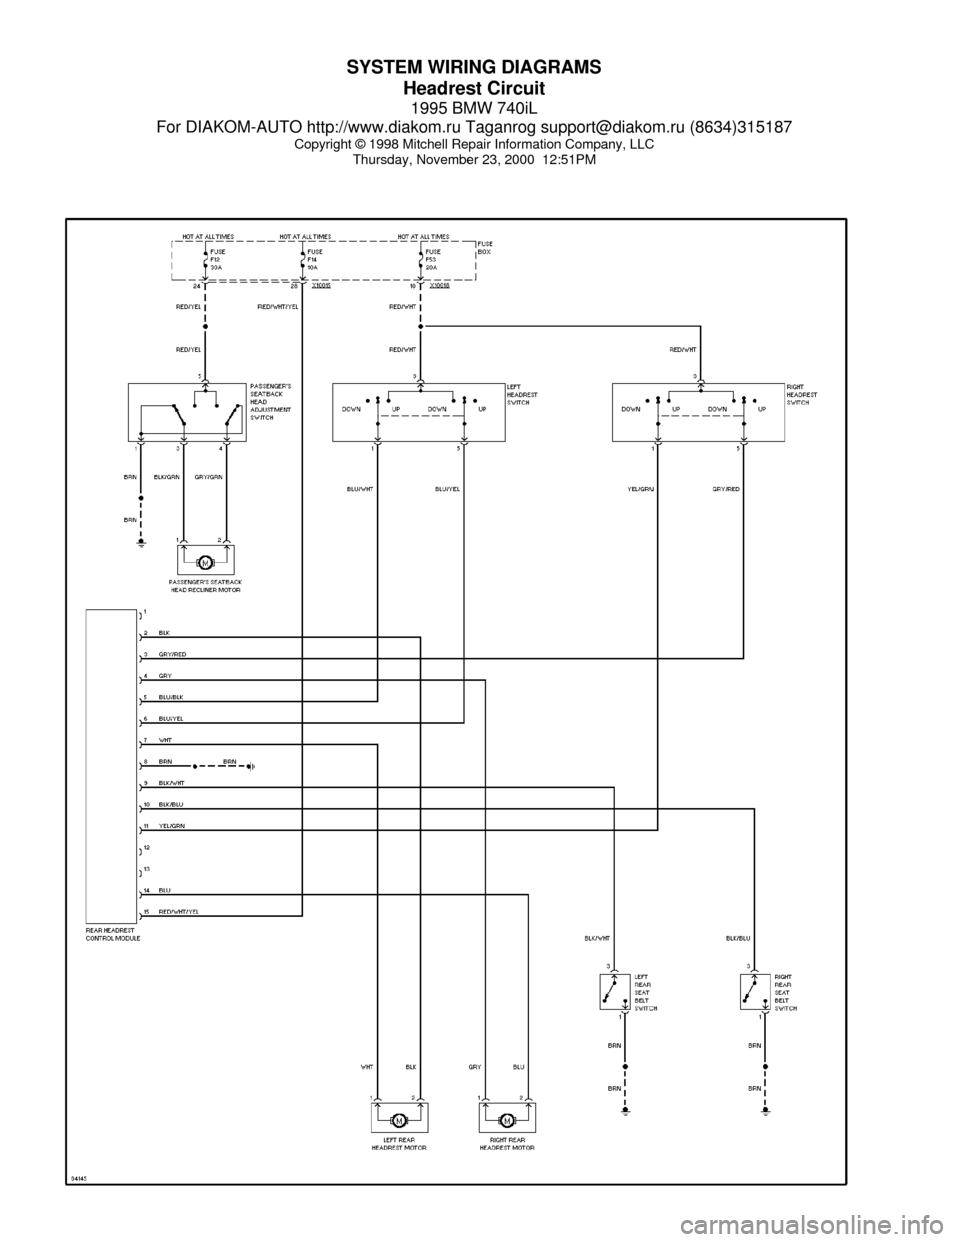 w960_2820 30 bmw 740il 1995 e38 system wiring diagrams bmw e38 wiring diagram at webbmarketing.co